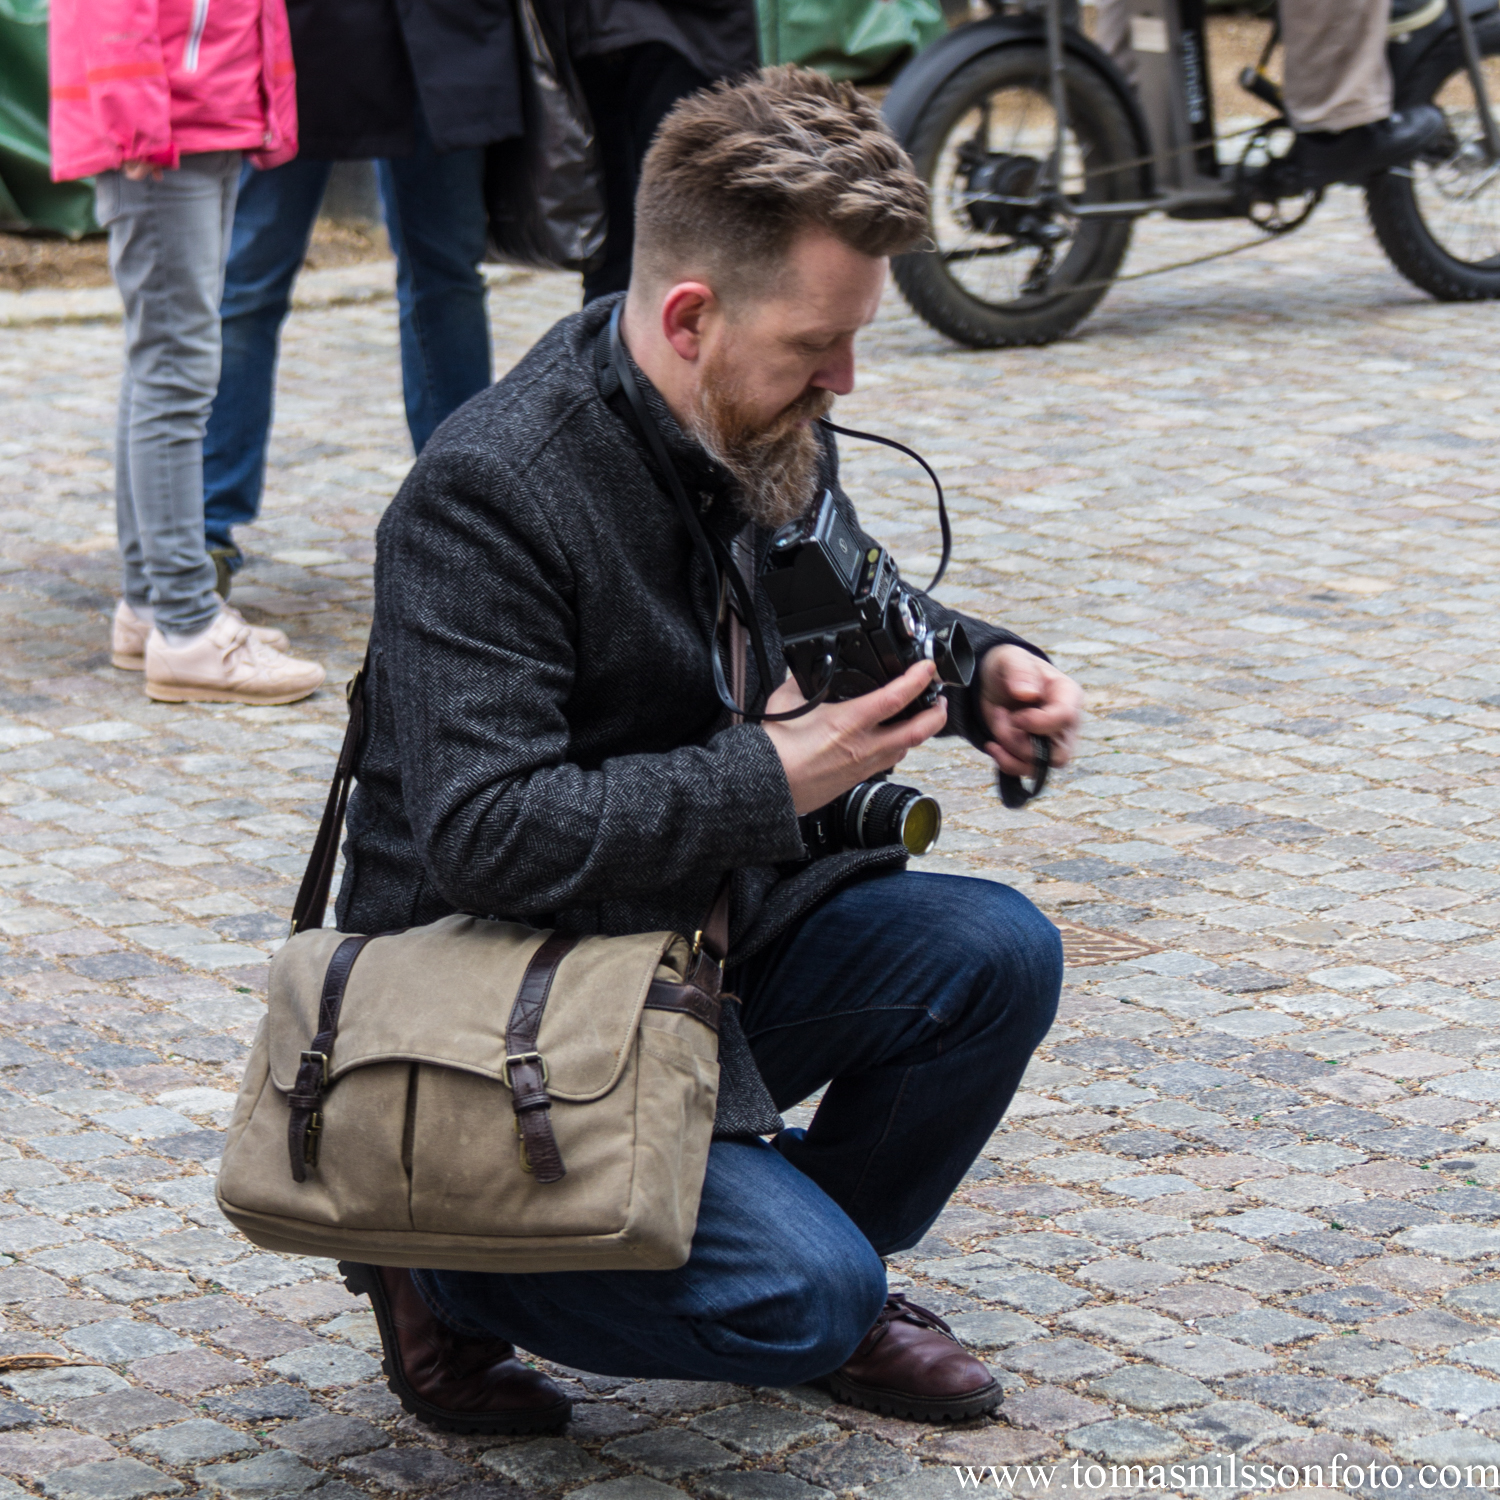 Day 86 - March 27: Getting the shot